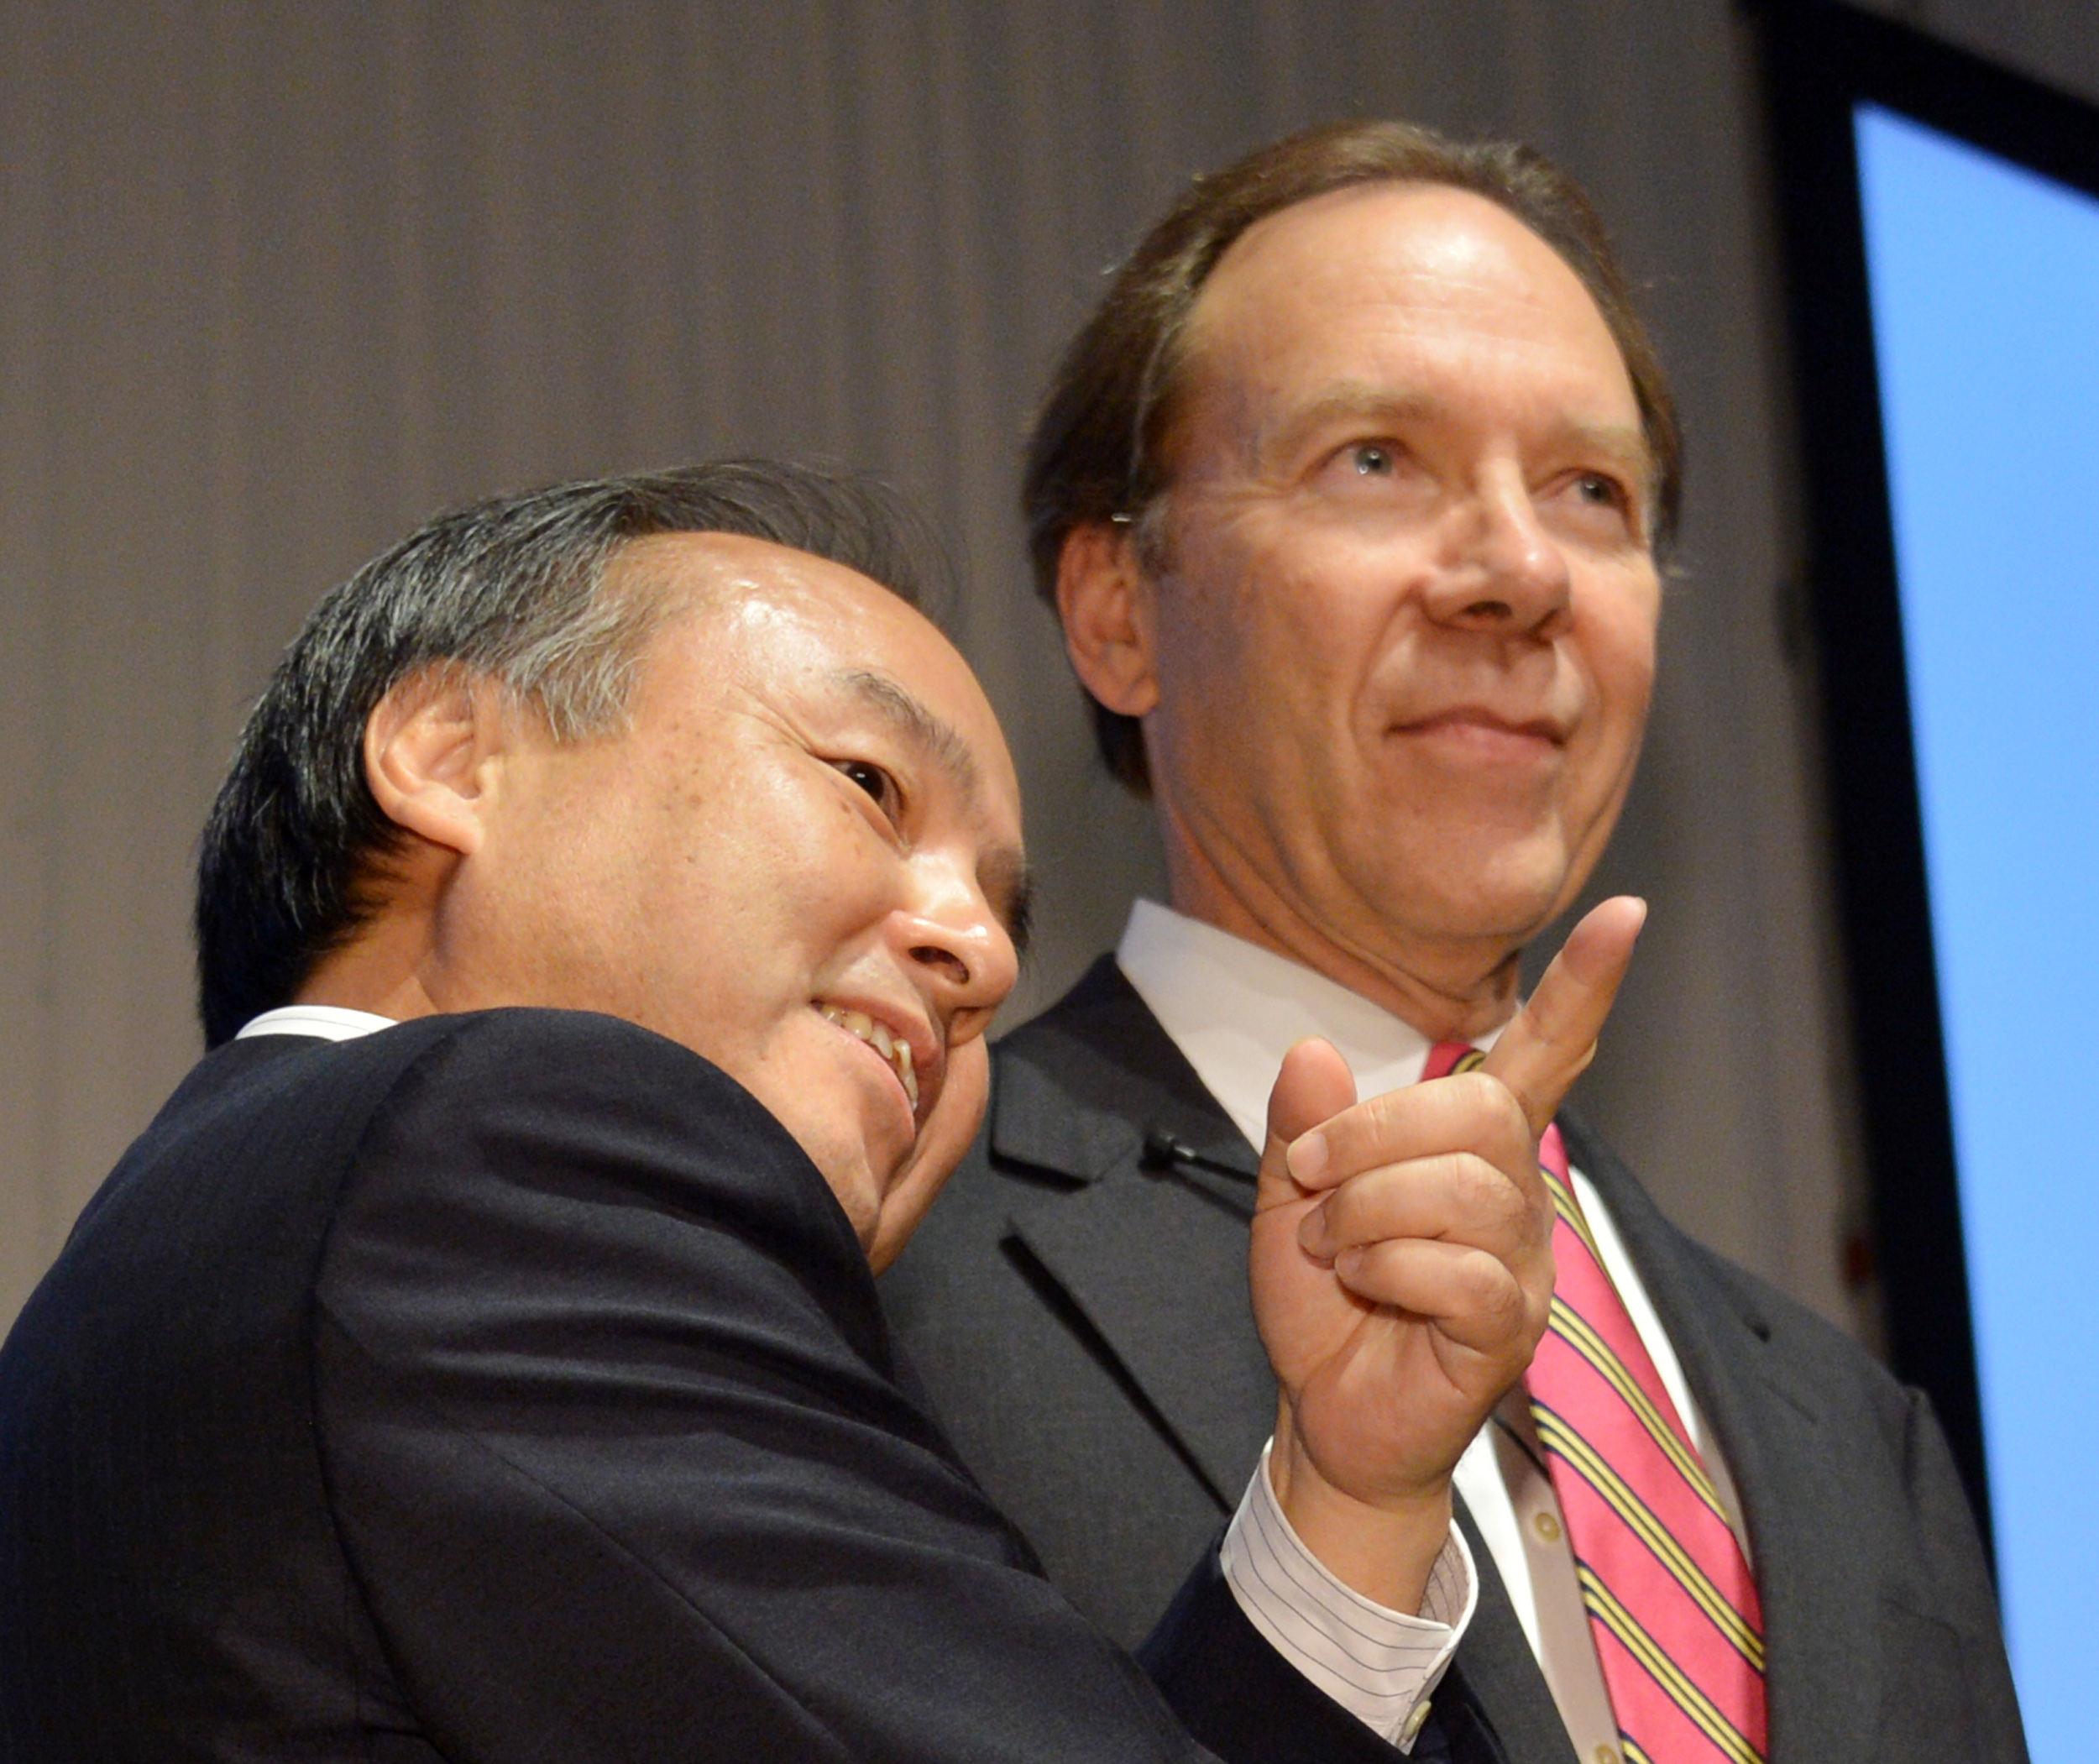 Masayoshi Son with Dan Hesse. Photo by Yoshikazu Tsuno/AFP/Getty Images